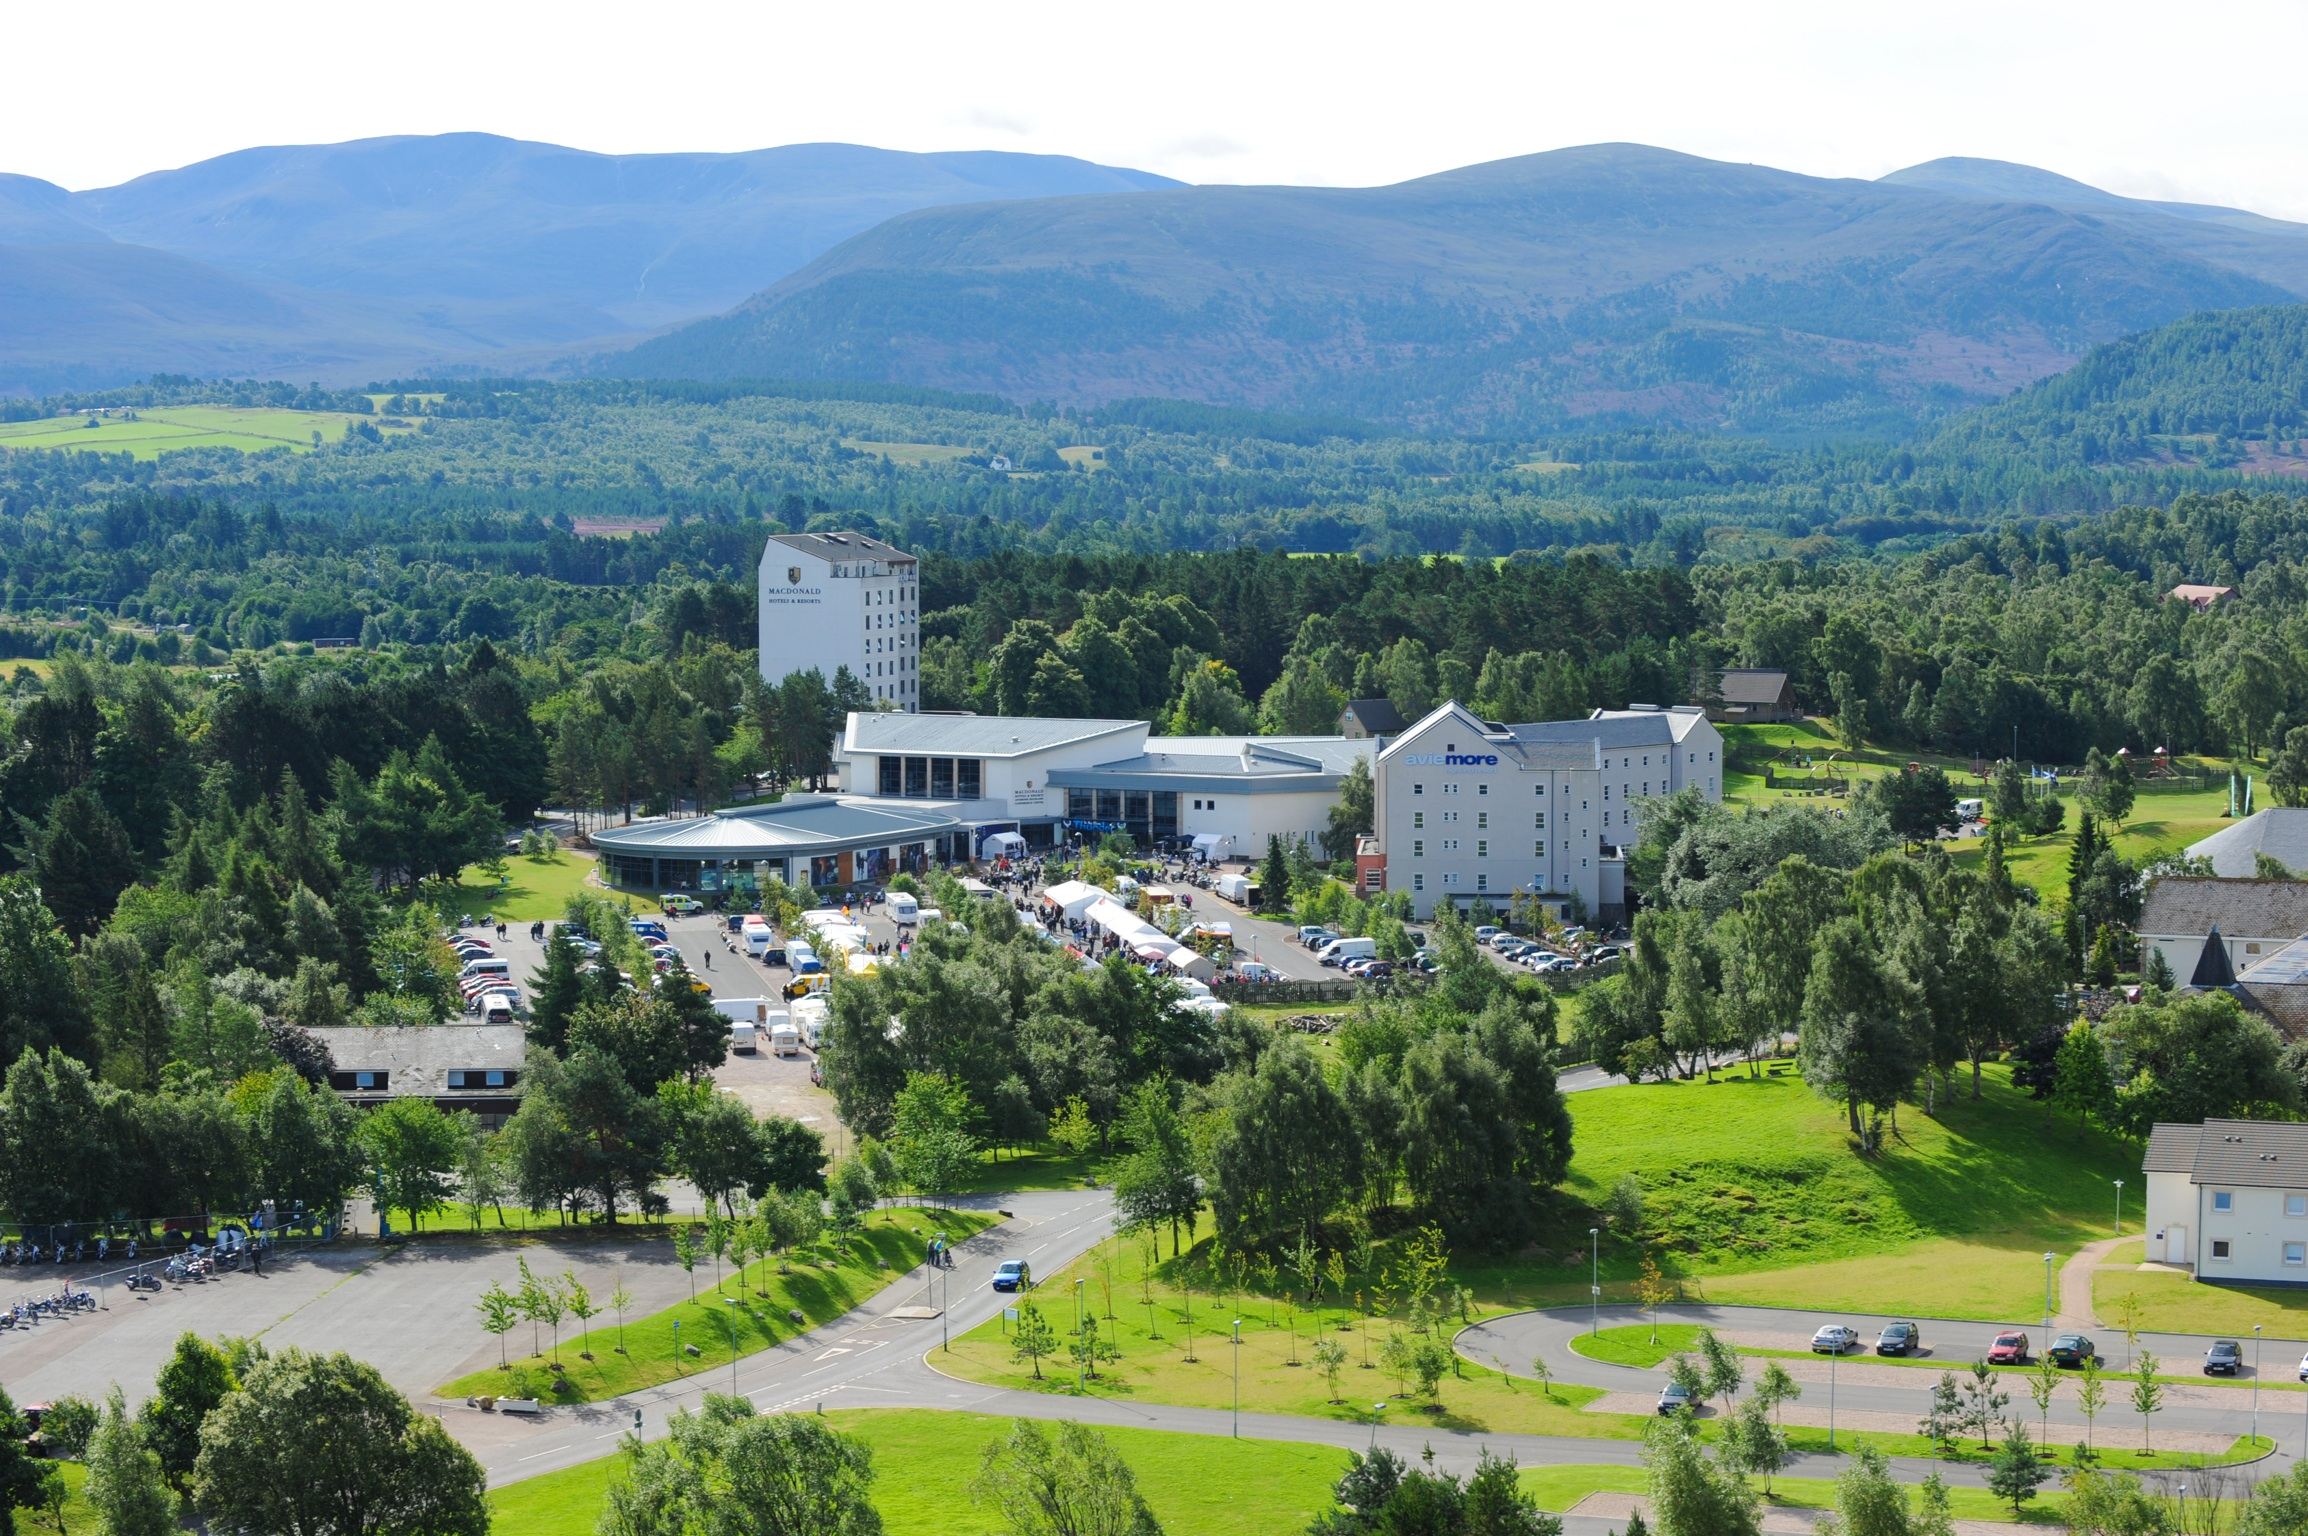 Photo of Macdonald Aviemore Resort, Cairngorms National Park, Scotland showing a white building surrounded by trees and cars